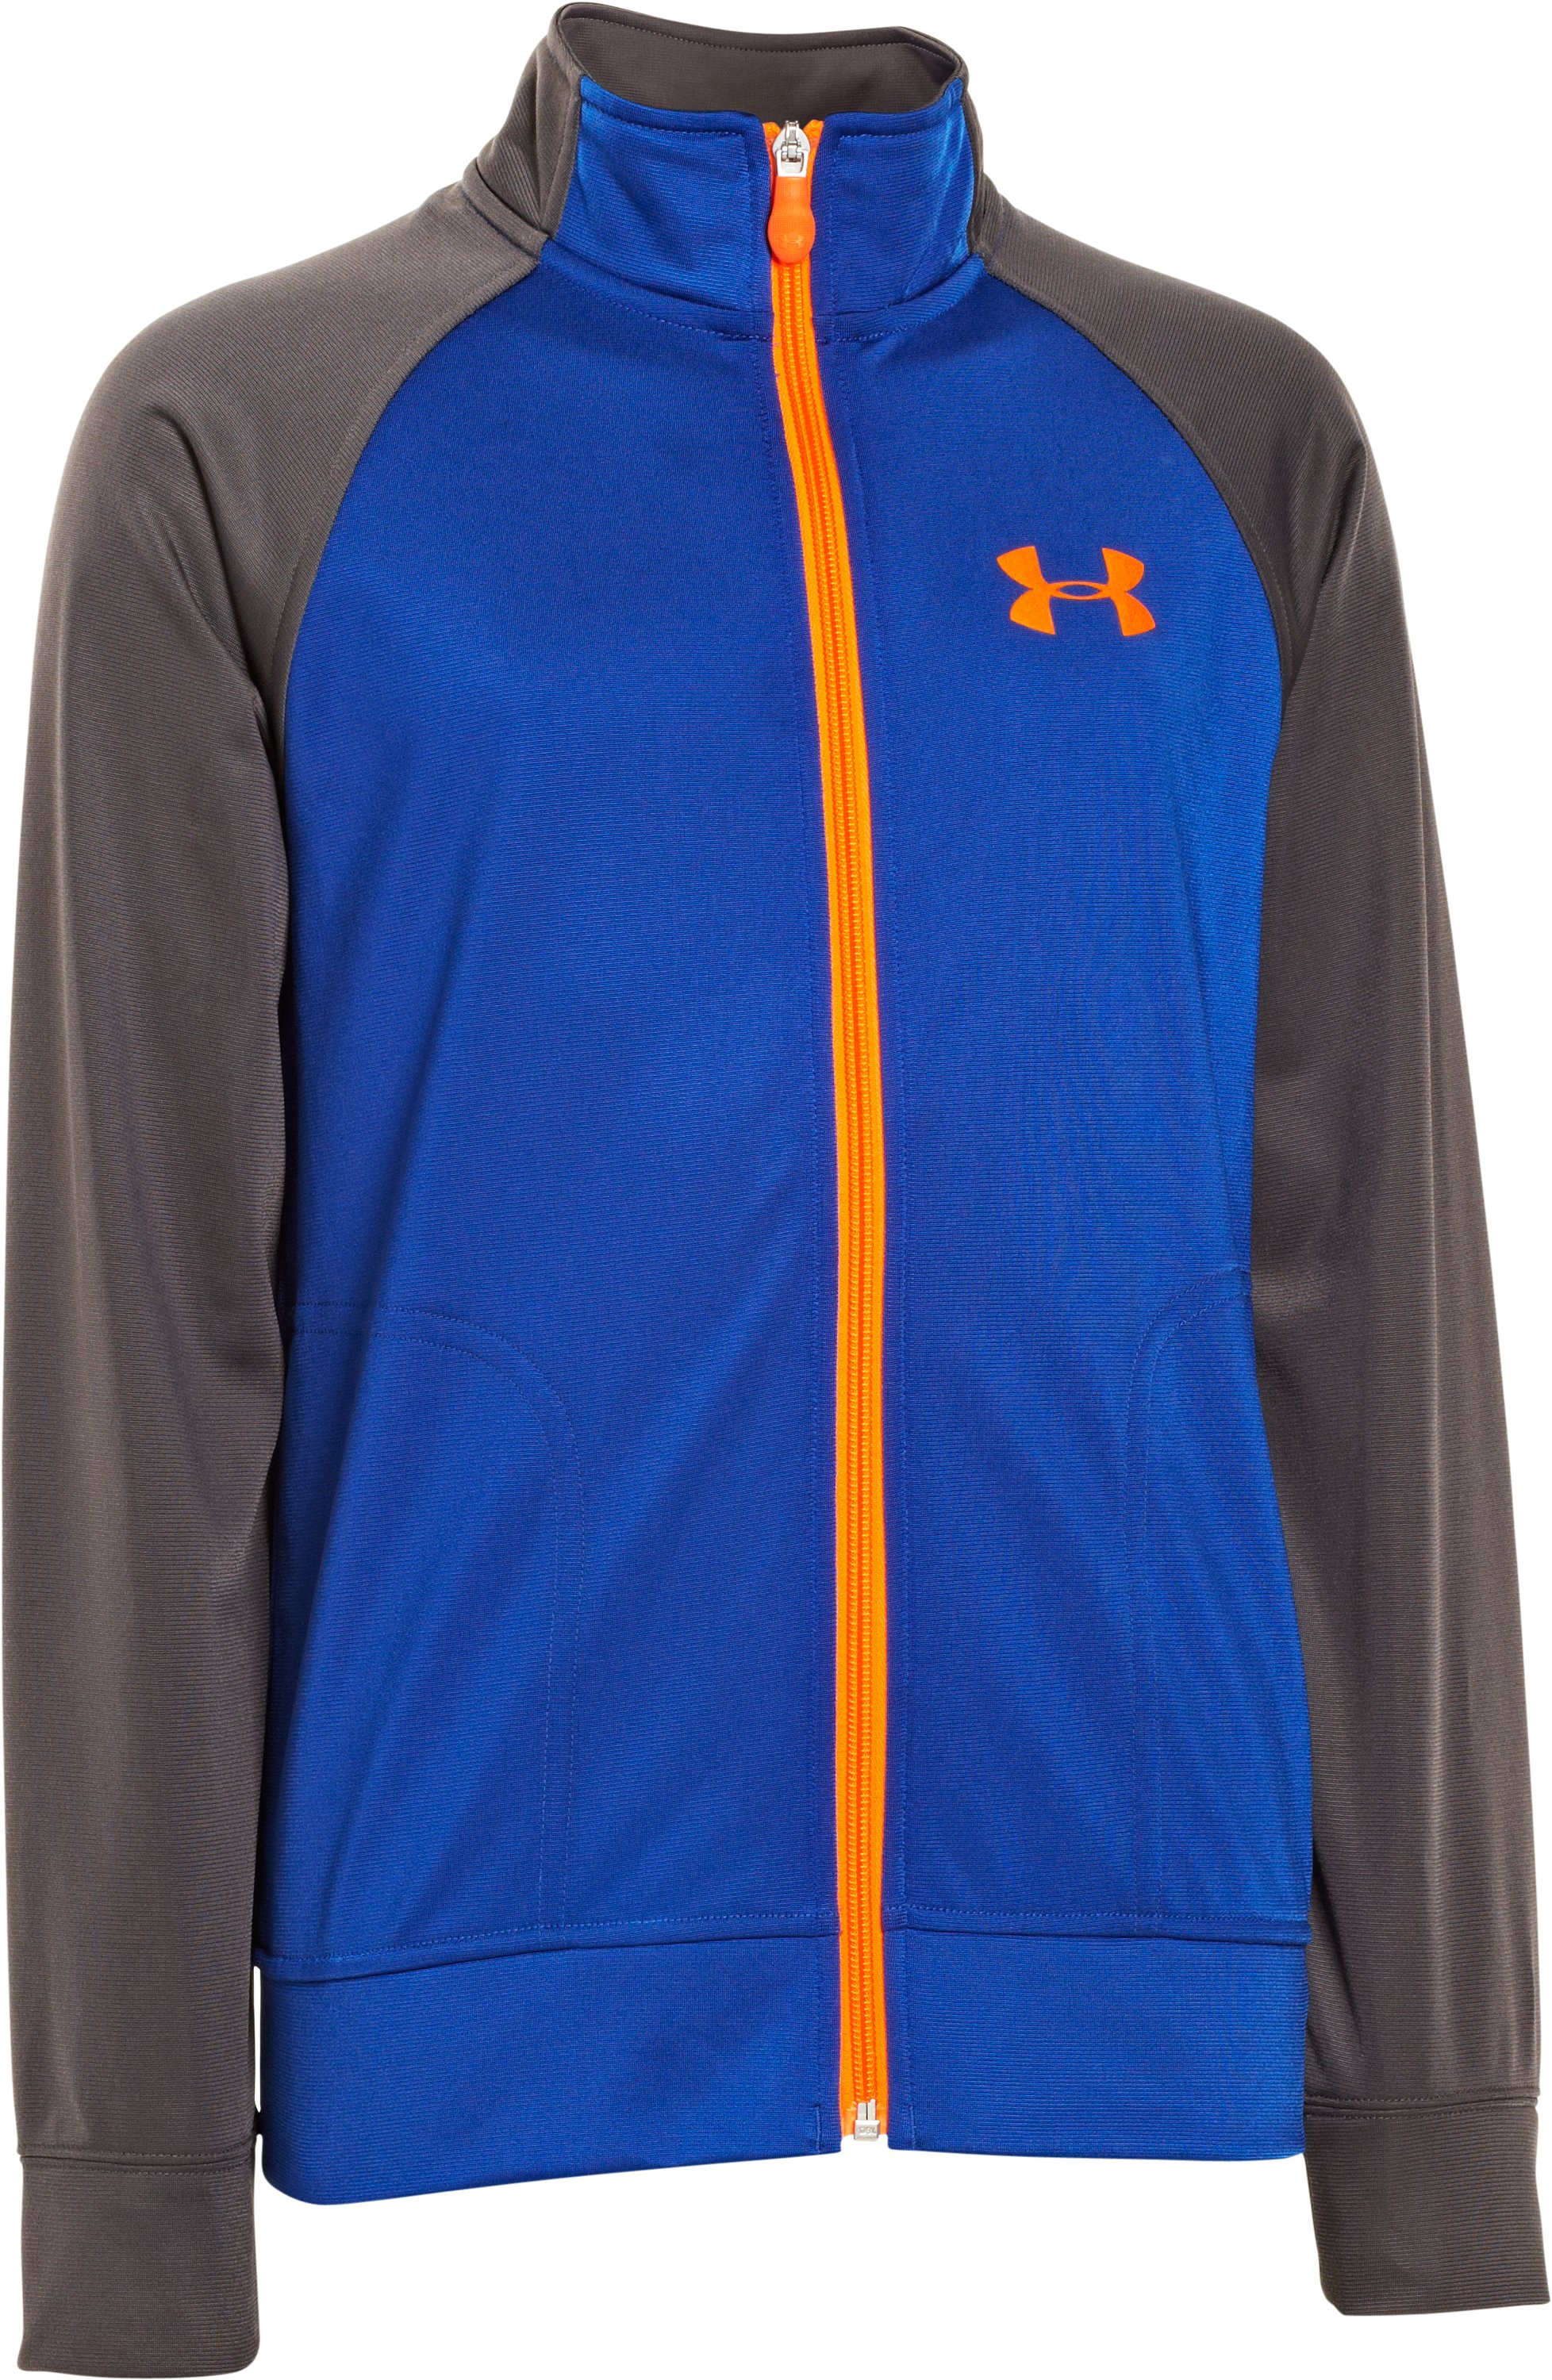 Boys' UA Brawler Knit Warm-Up Jacket 2.0, Royal